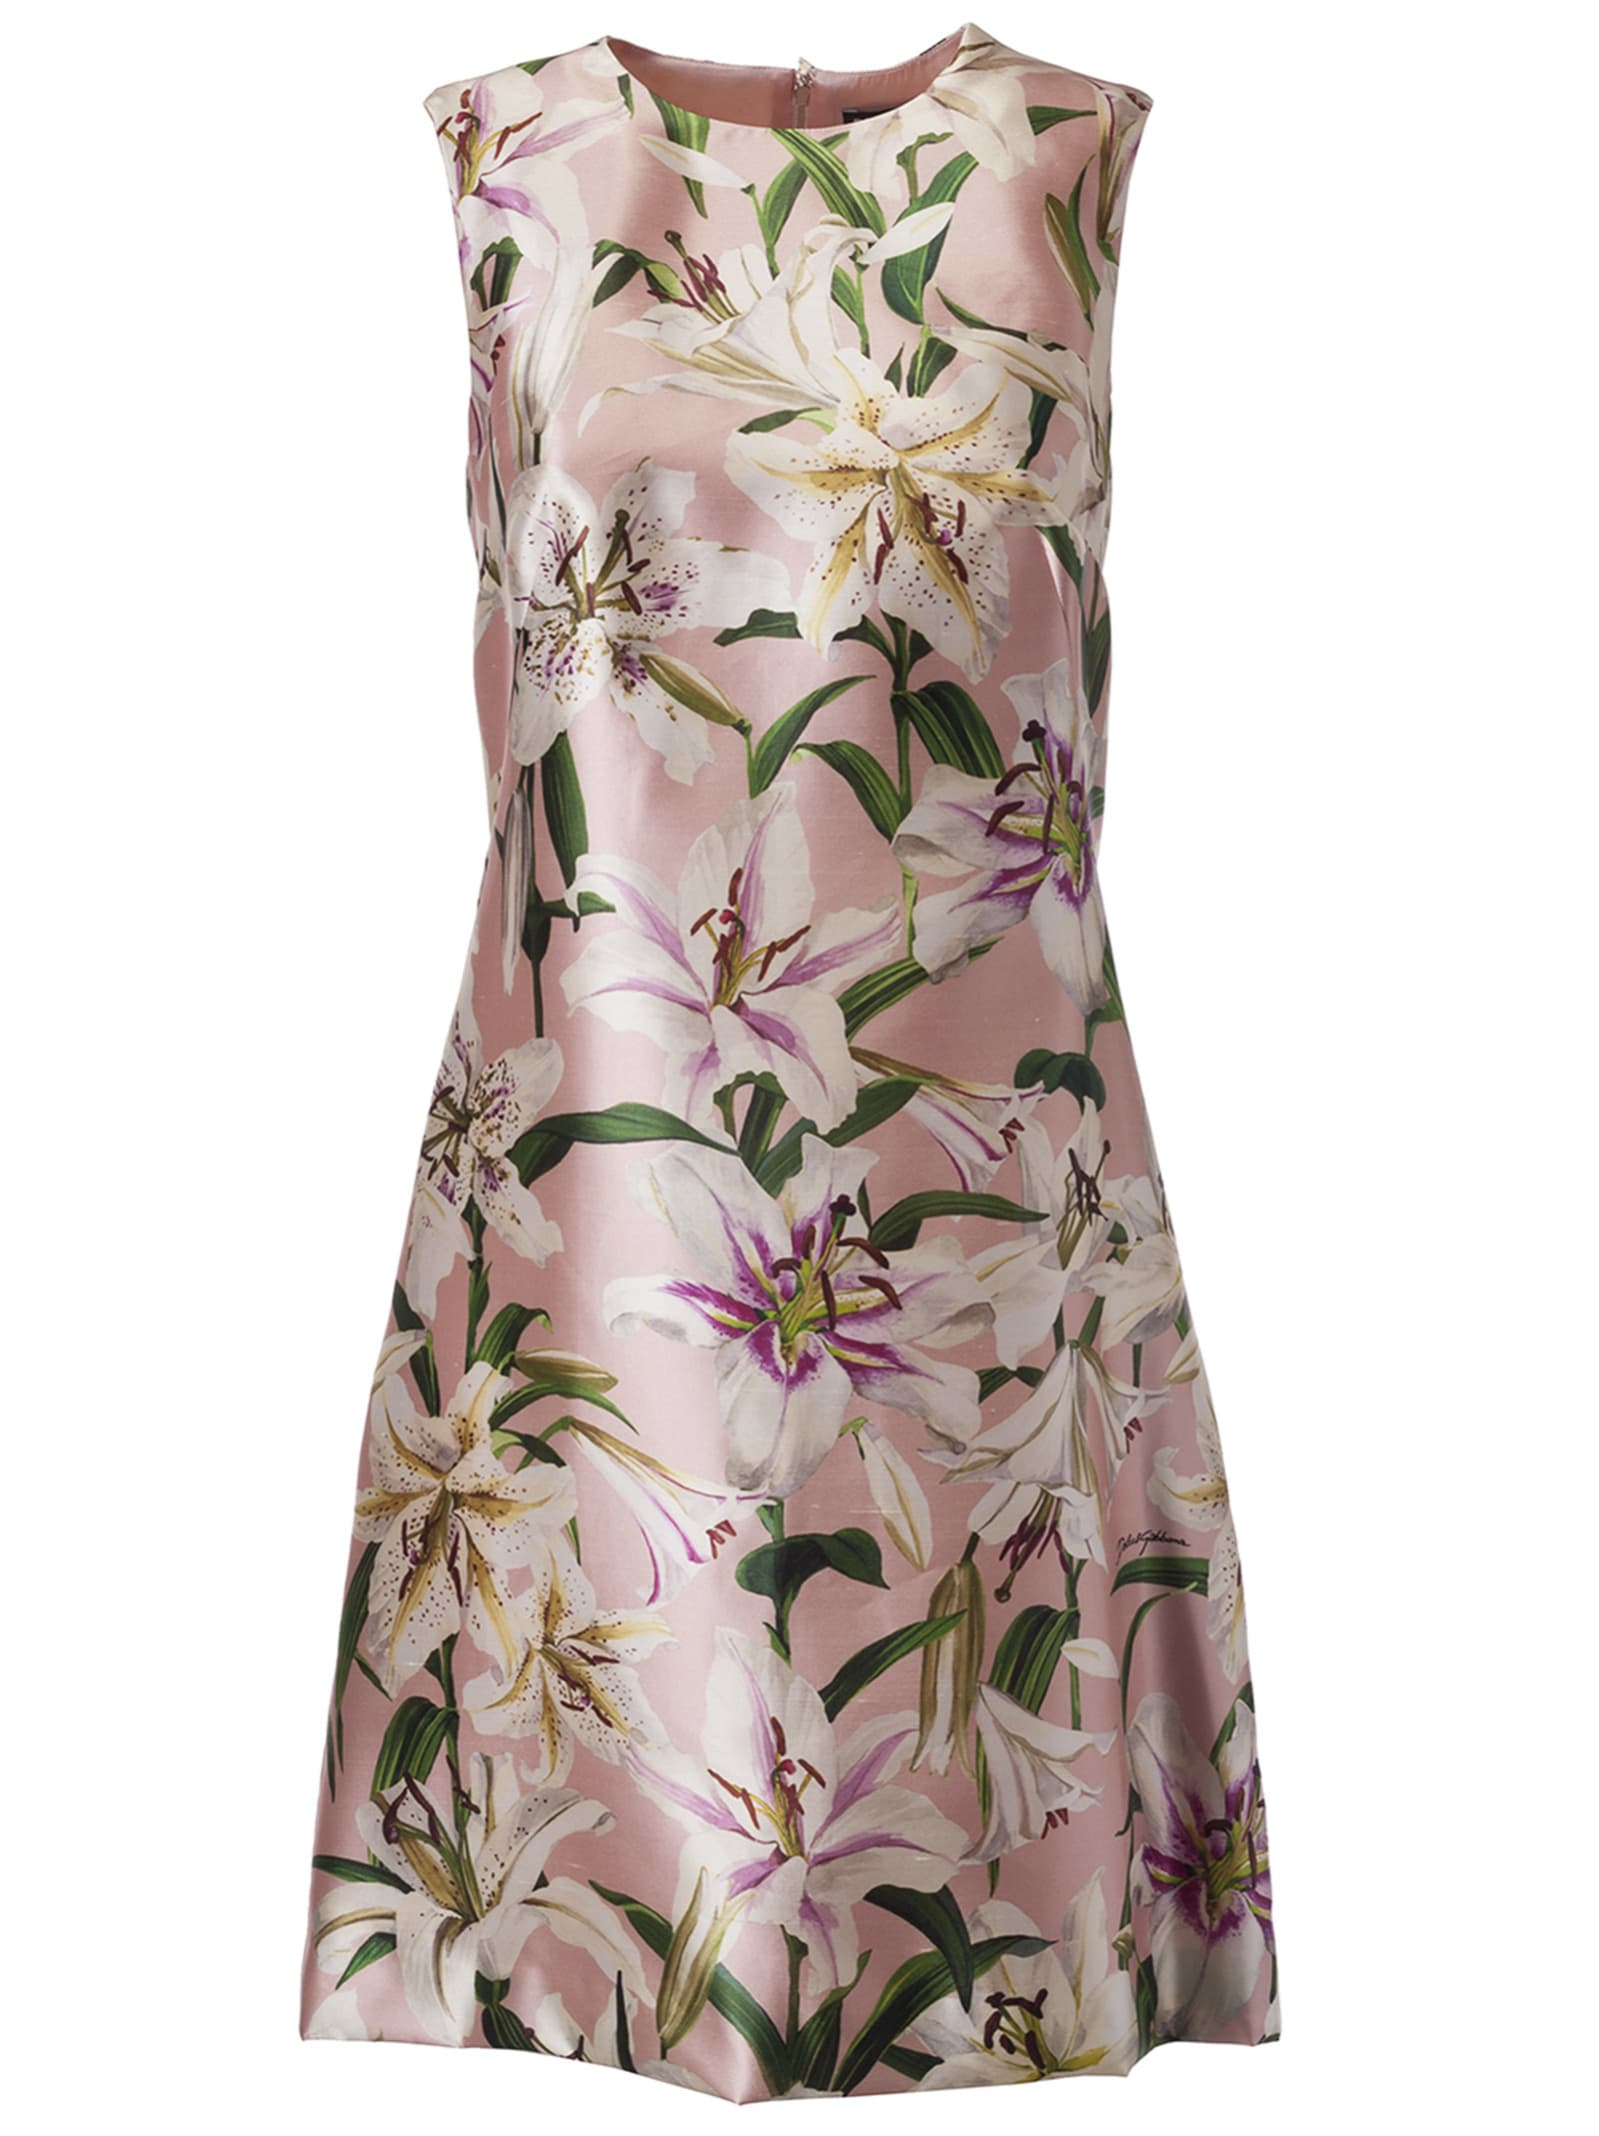 Dolce & Gabbana Flower Print Sleeveless Dress